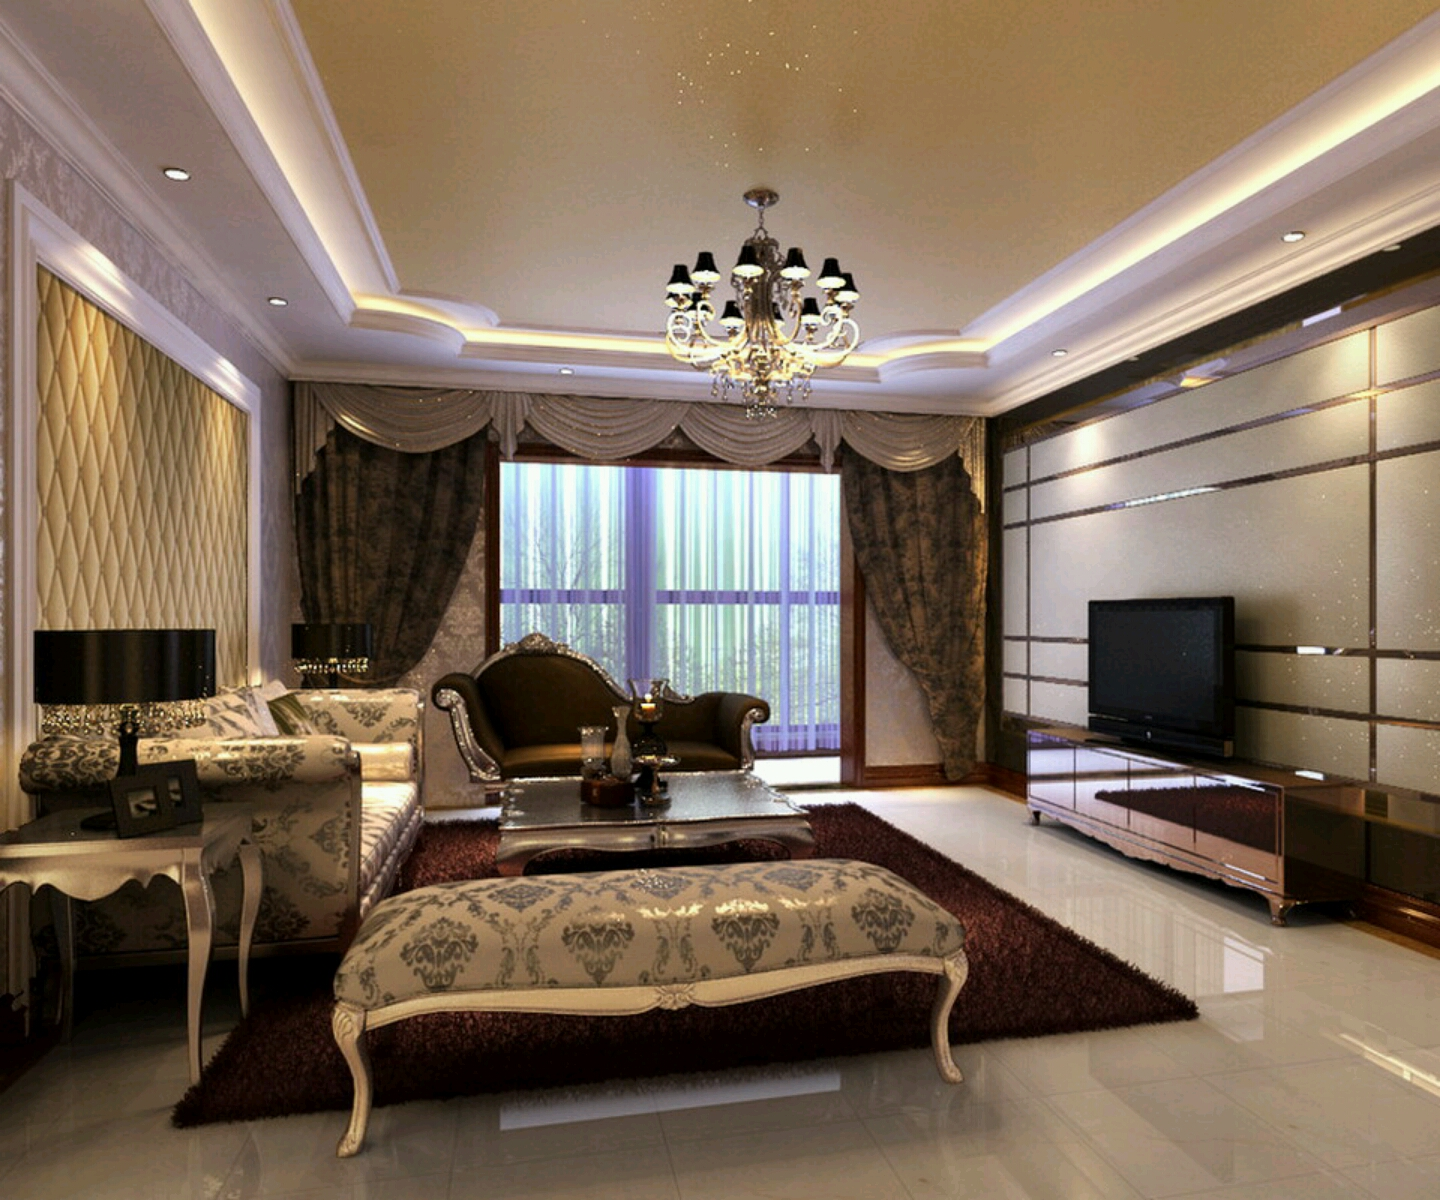 New home designs latest luxury homes interior decoration for Latest interior designs for home